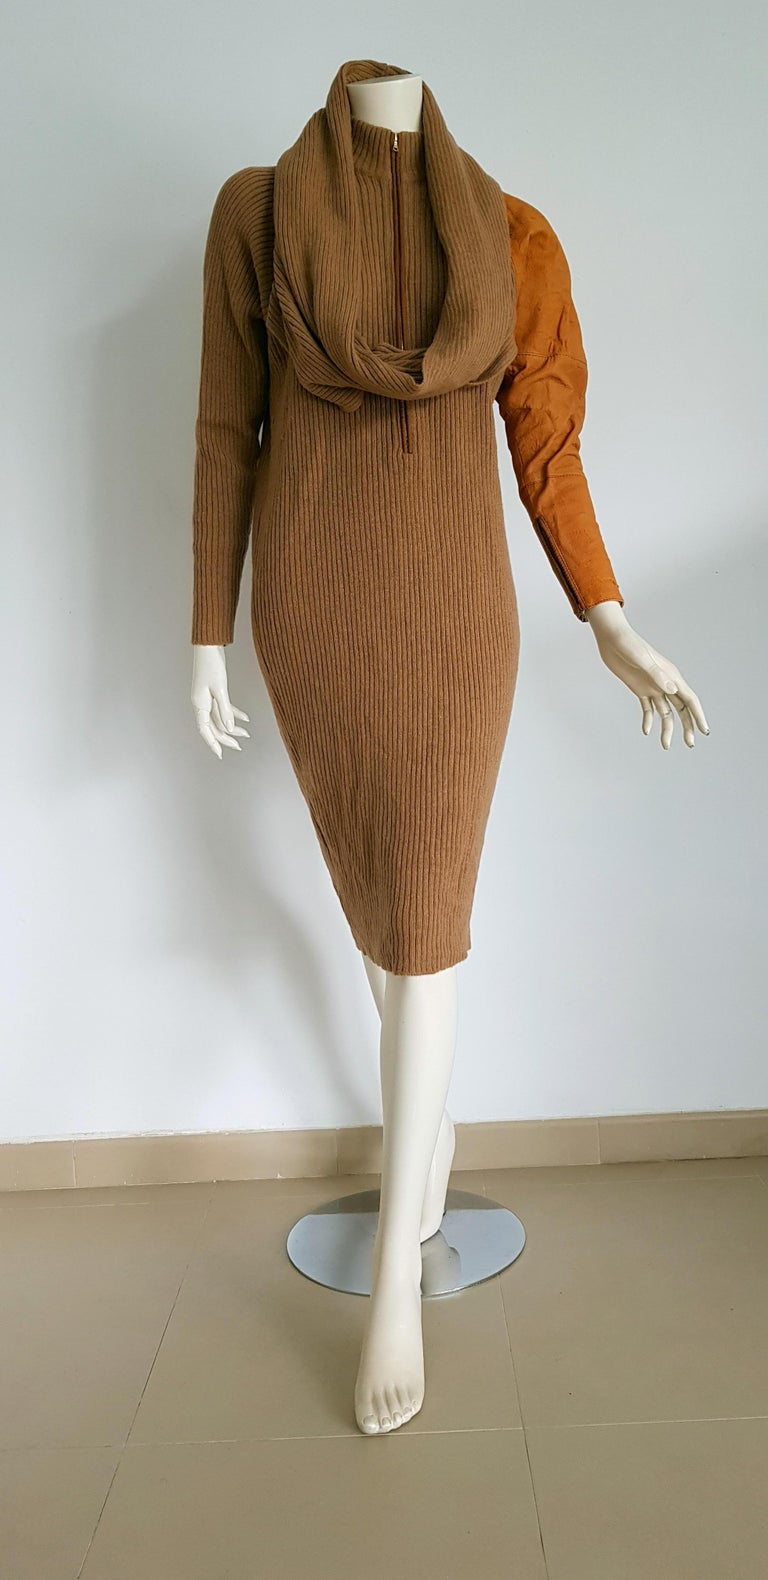 Gianfranco FERRE Couture, one deerskin sleeve, mesh camel dress. Scarf shaped as collar combined with the dress -  Unworn, New.    SIZE: equivalent to about Small / Medium, please review approx measurements as follows in cm: lenght 112, chest